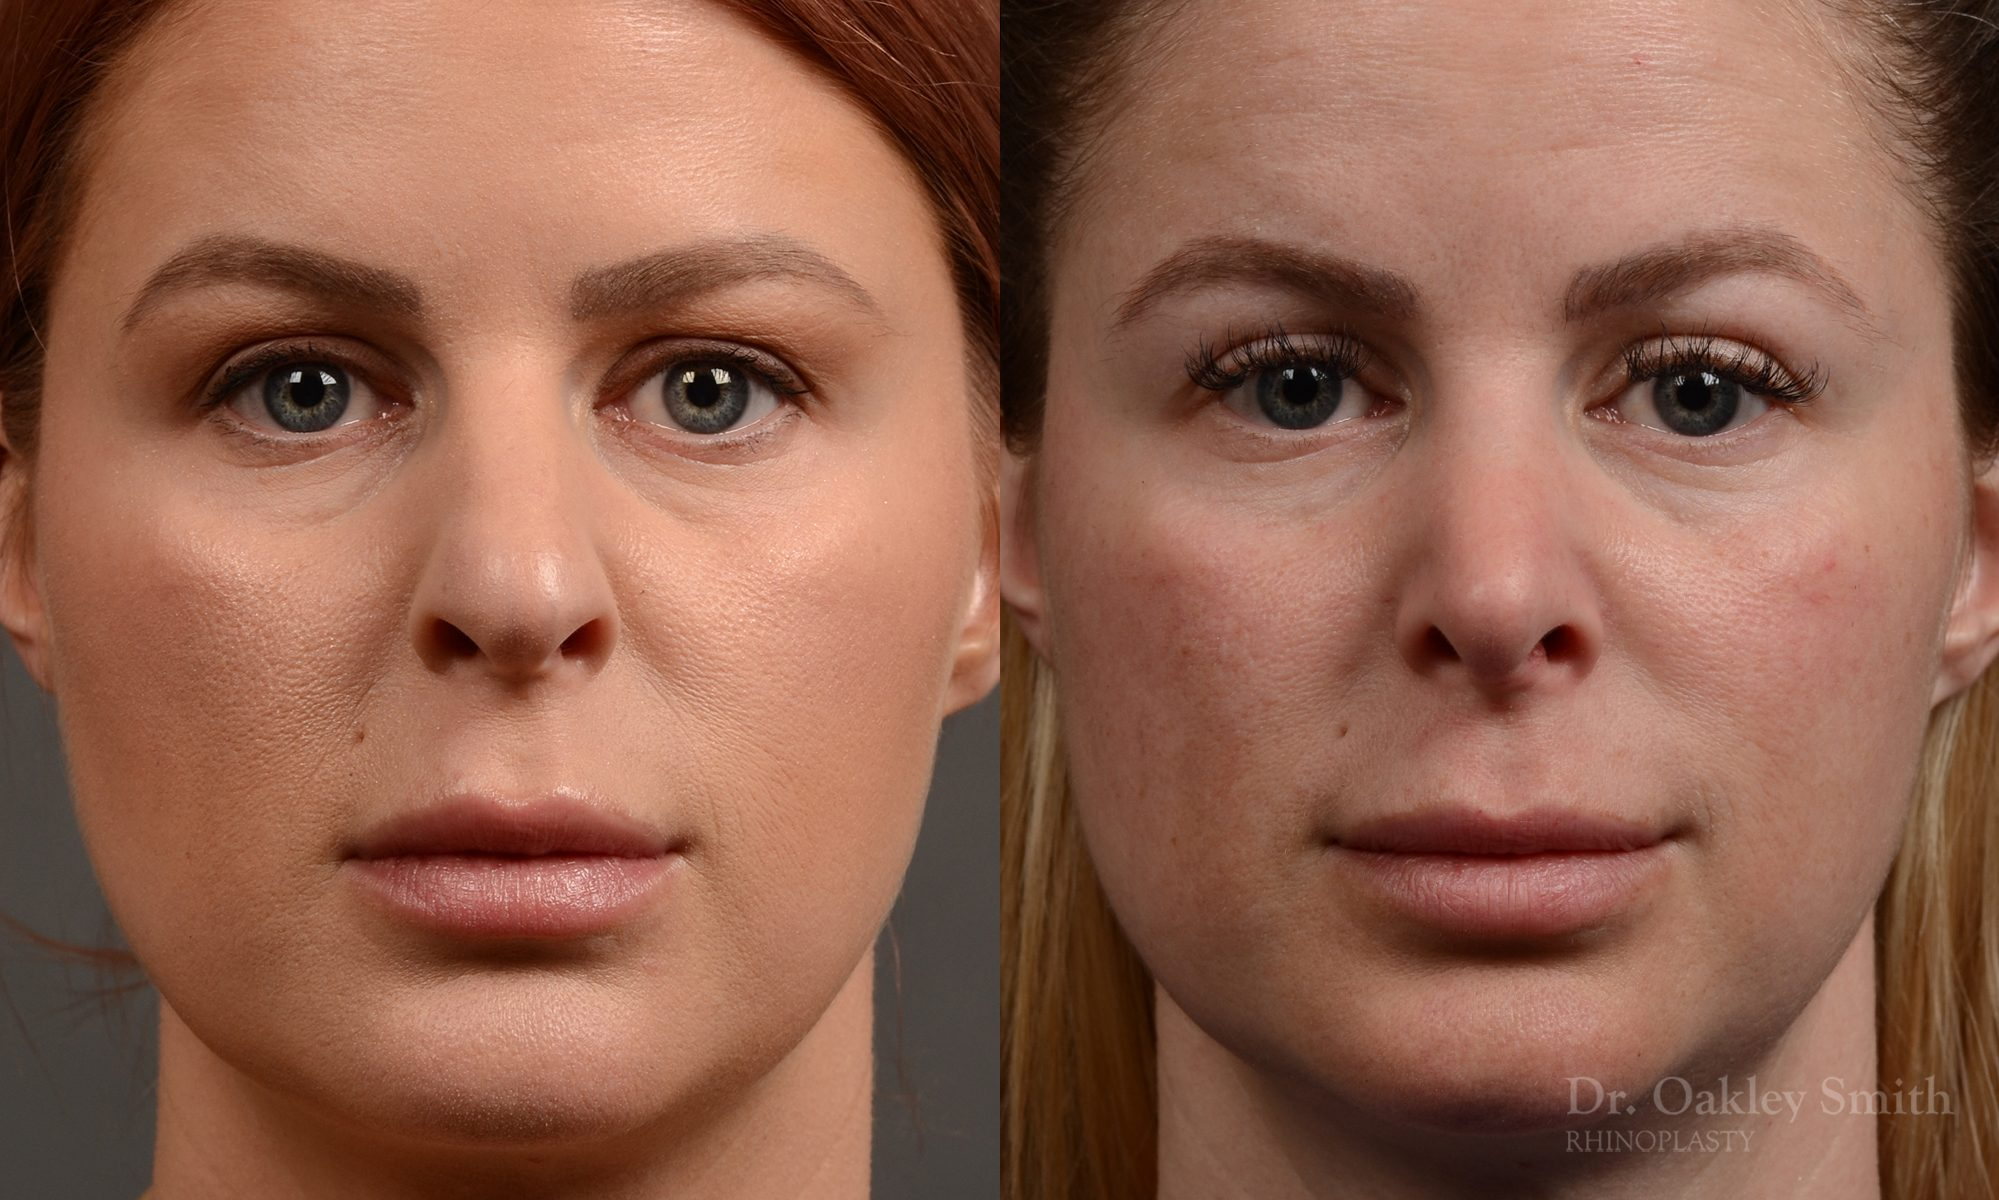 Rhinoplasty - Rhinoplasty Before and After Case 361